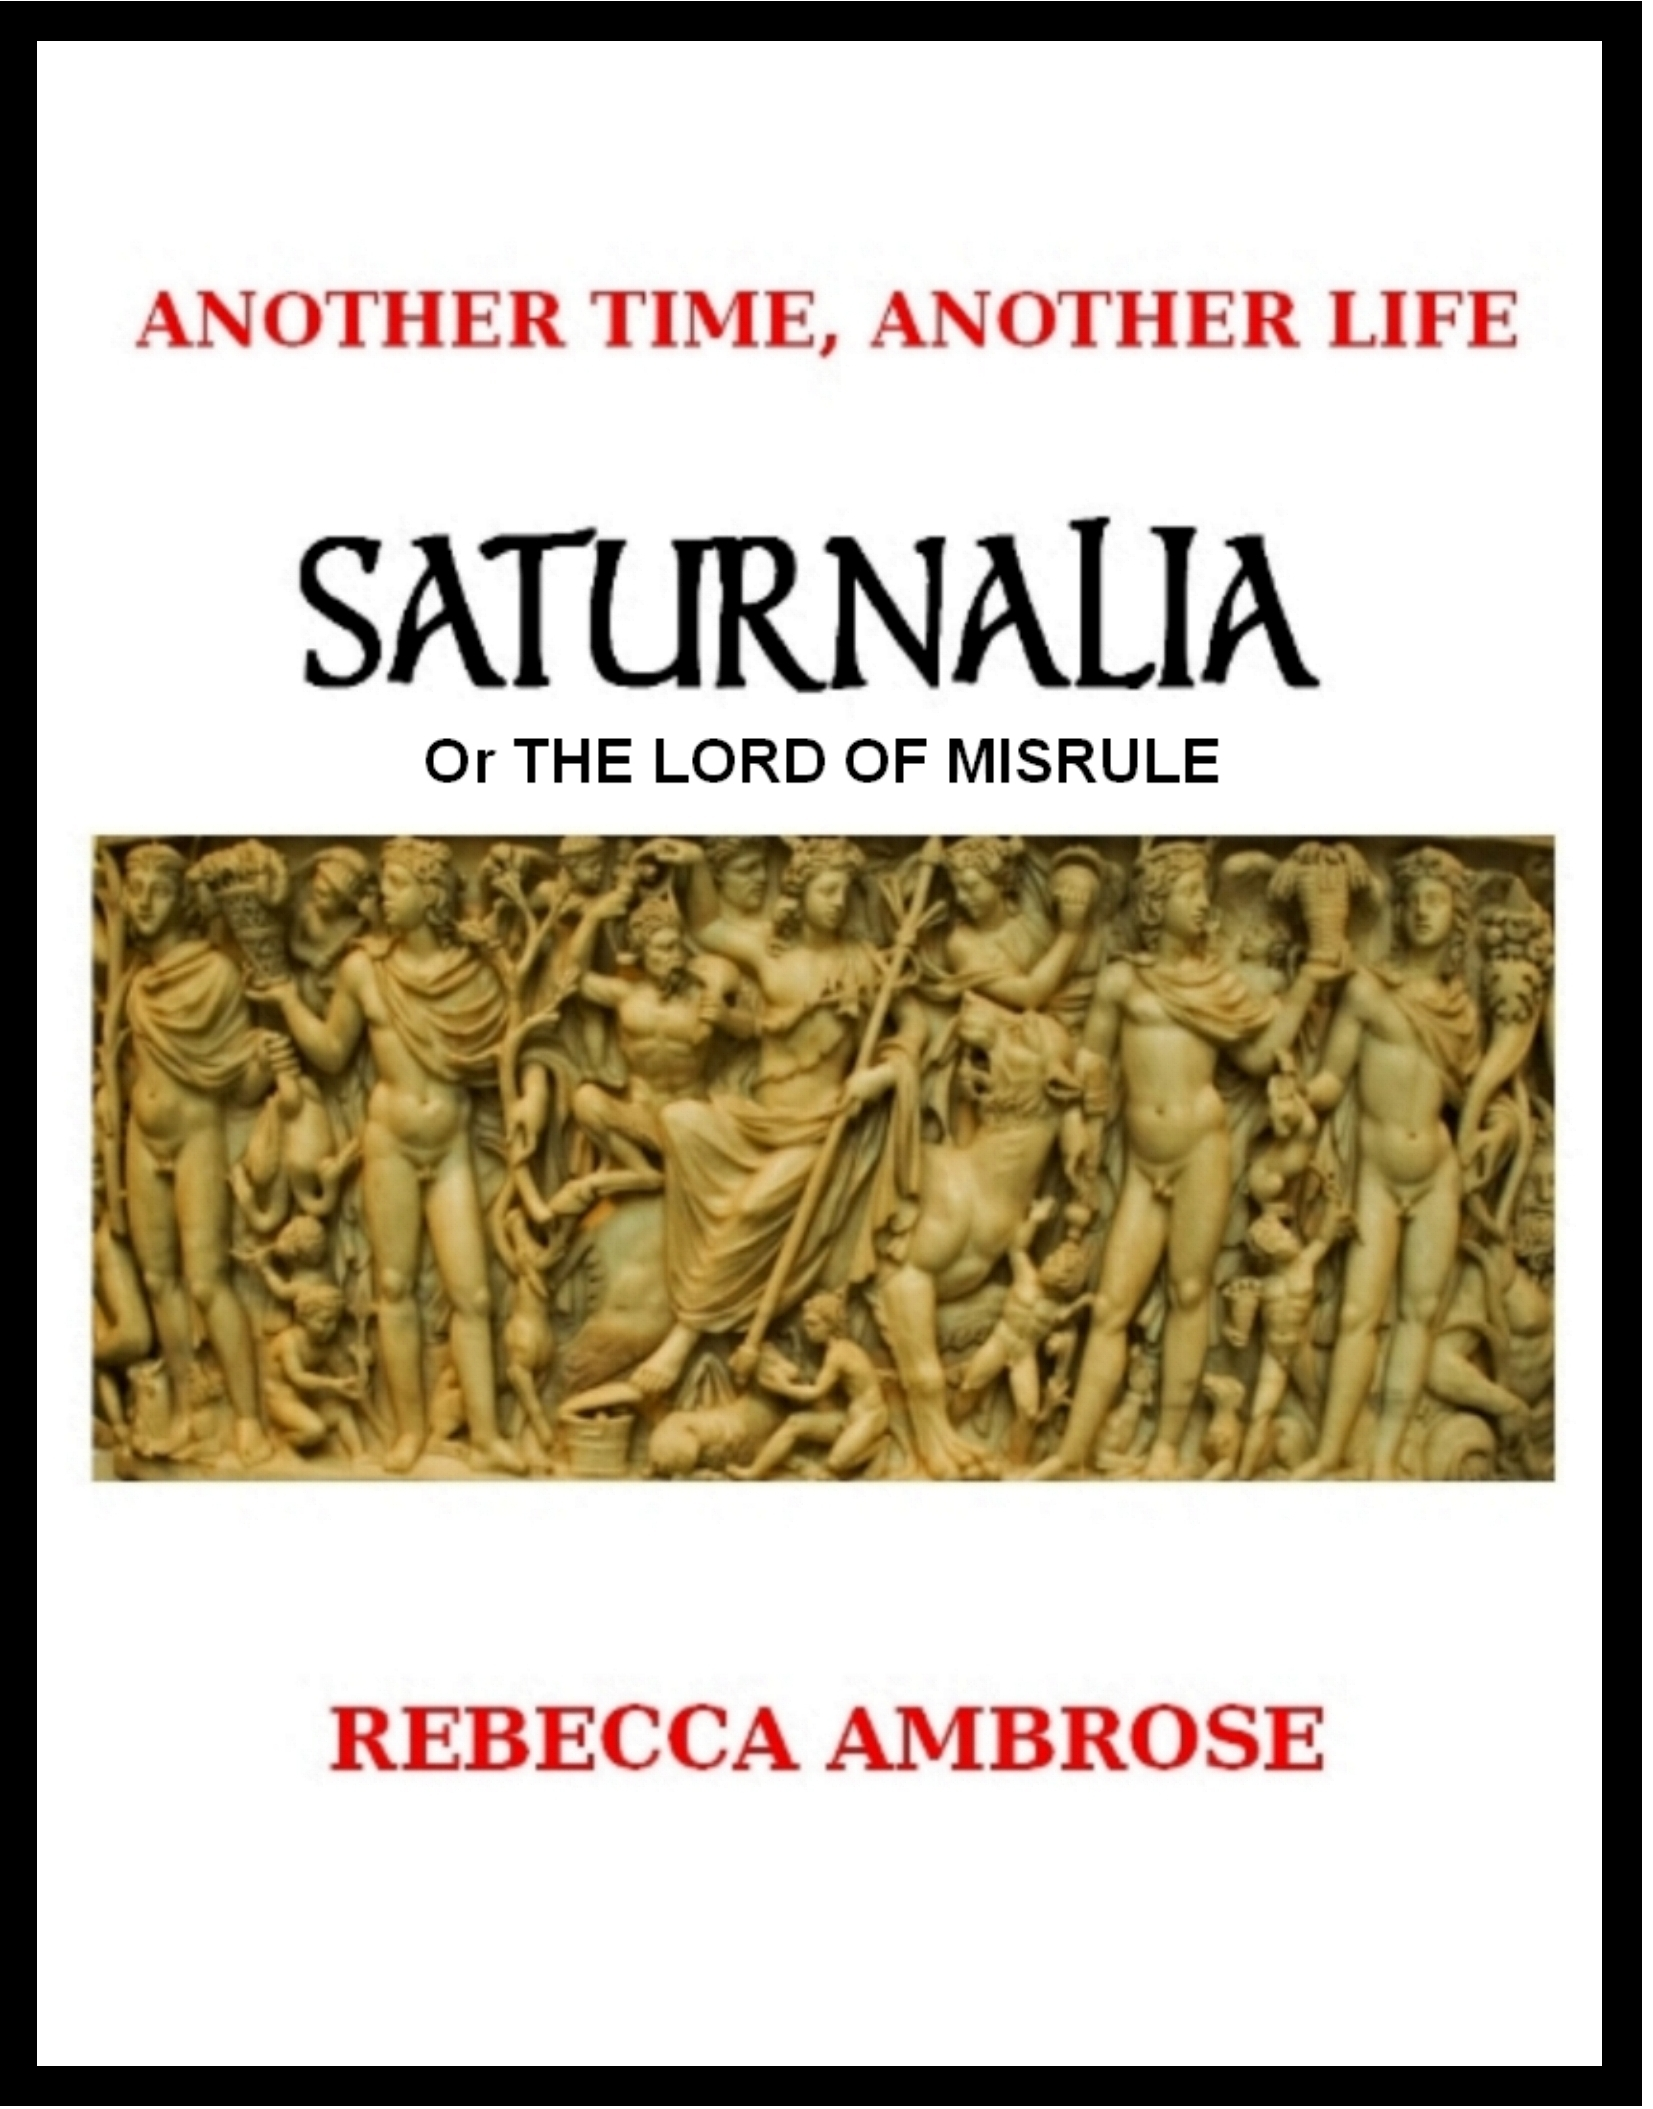 Saturnalia, or The Lord of Misrule